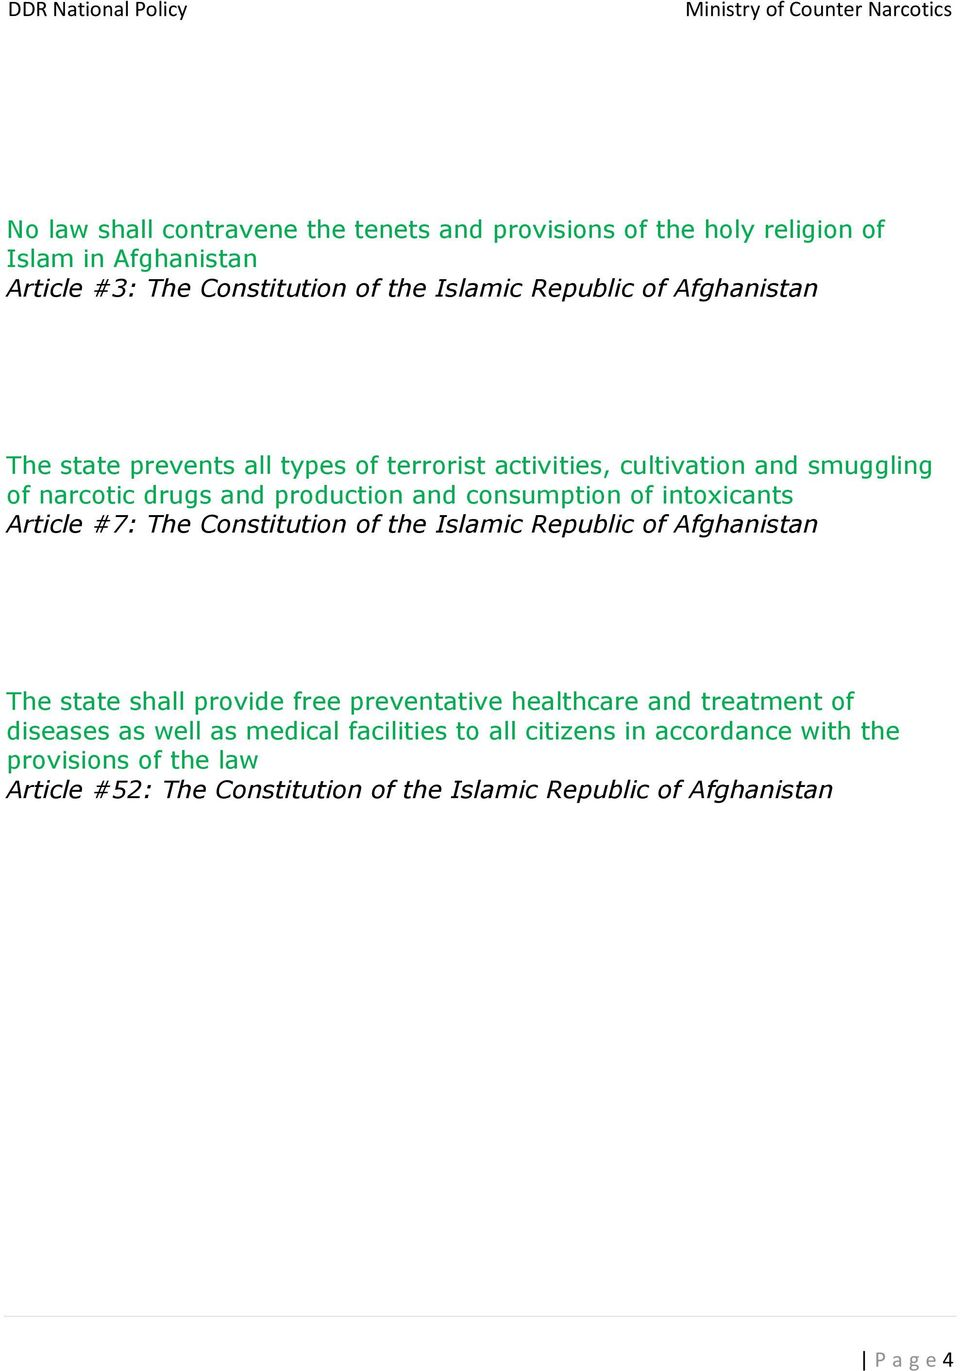 Article #7: The Constitution of the Islamic Republic of Afghanistan The state shall provide free preventative healthcare and treatment of diseases as well